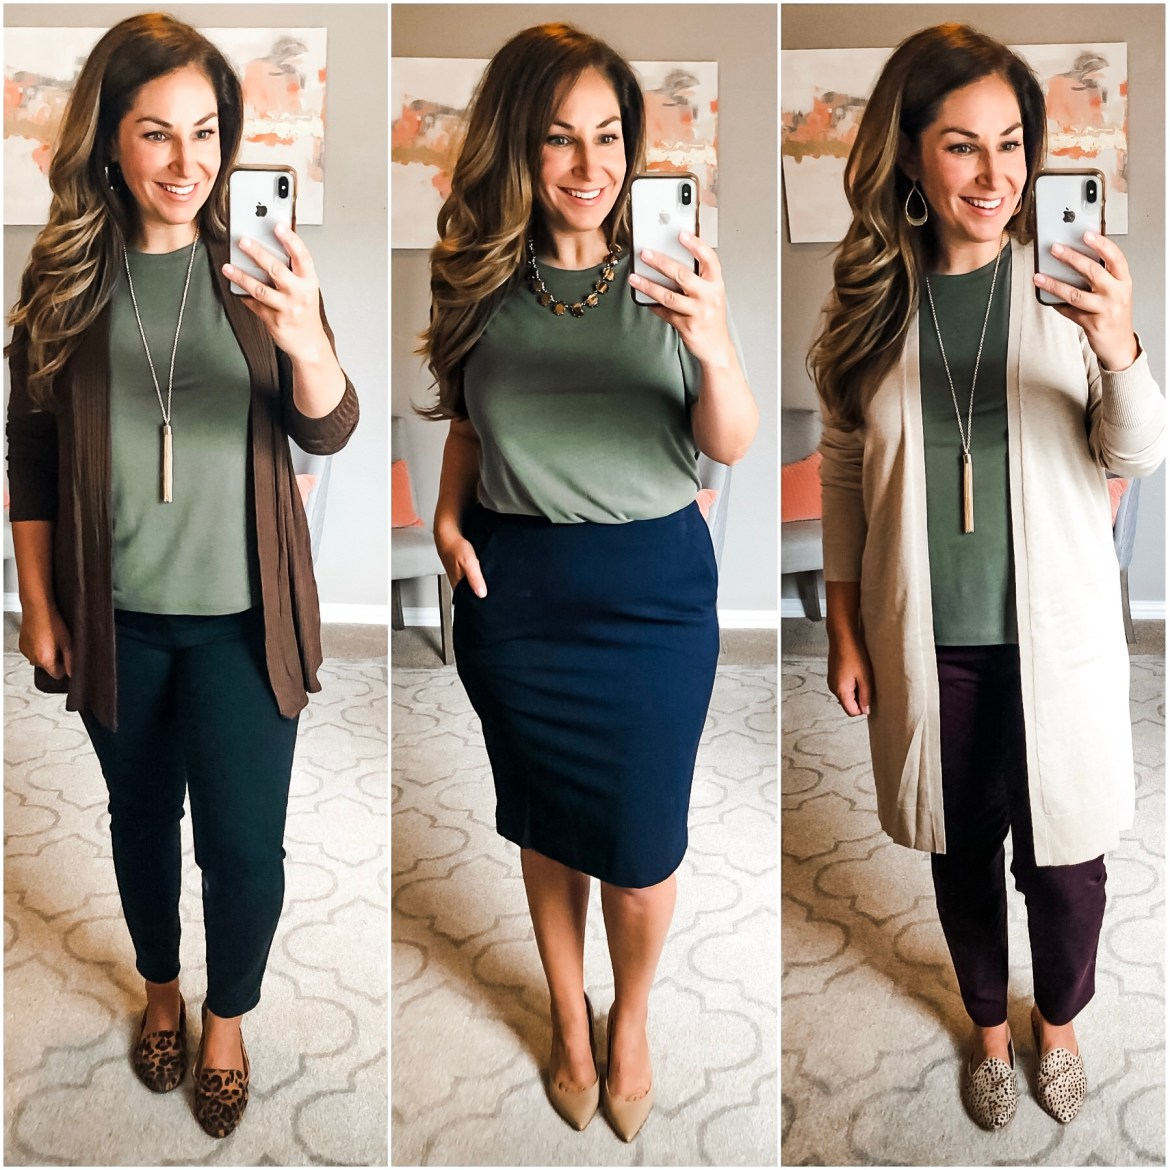 Fall 2019 Target Business Casual Capsule Wardrobe: 18 pieces for under $315